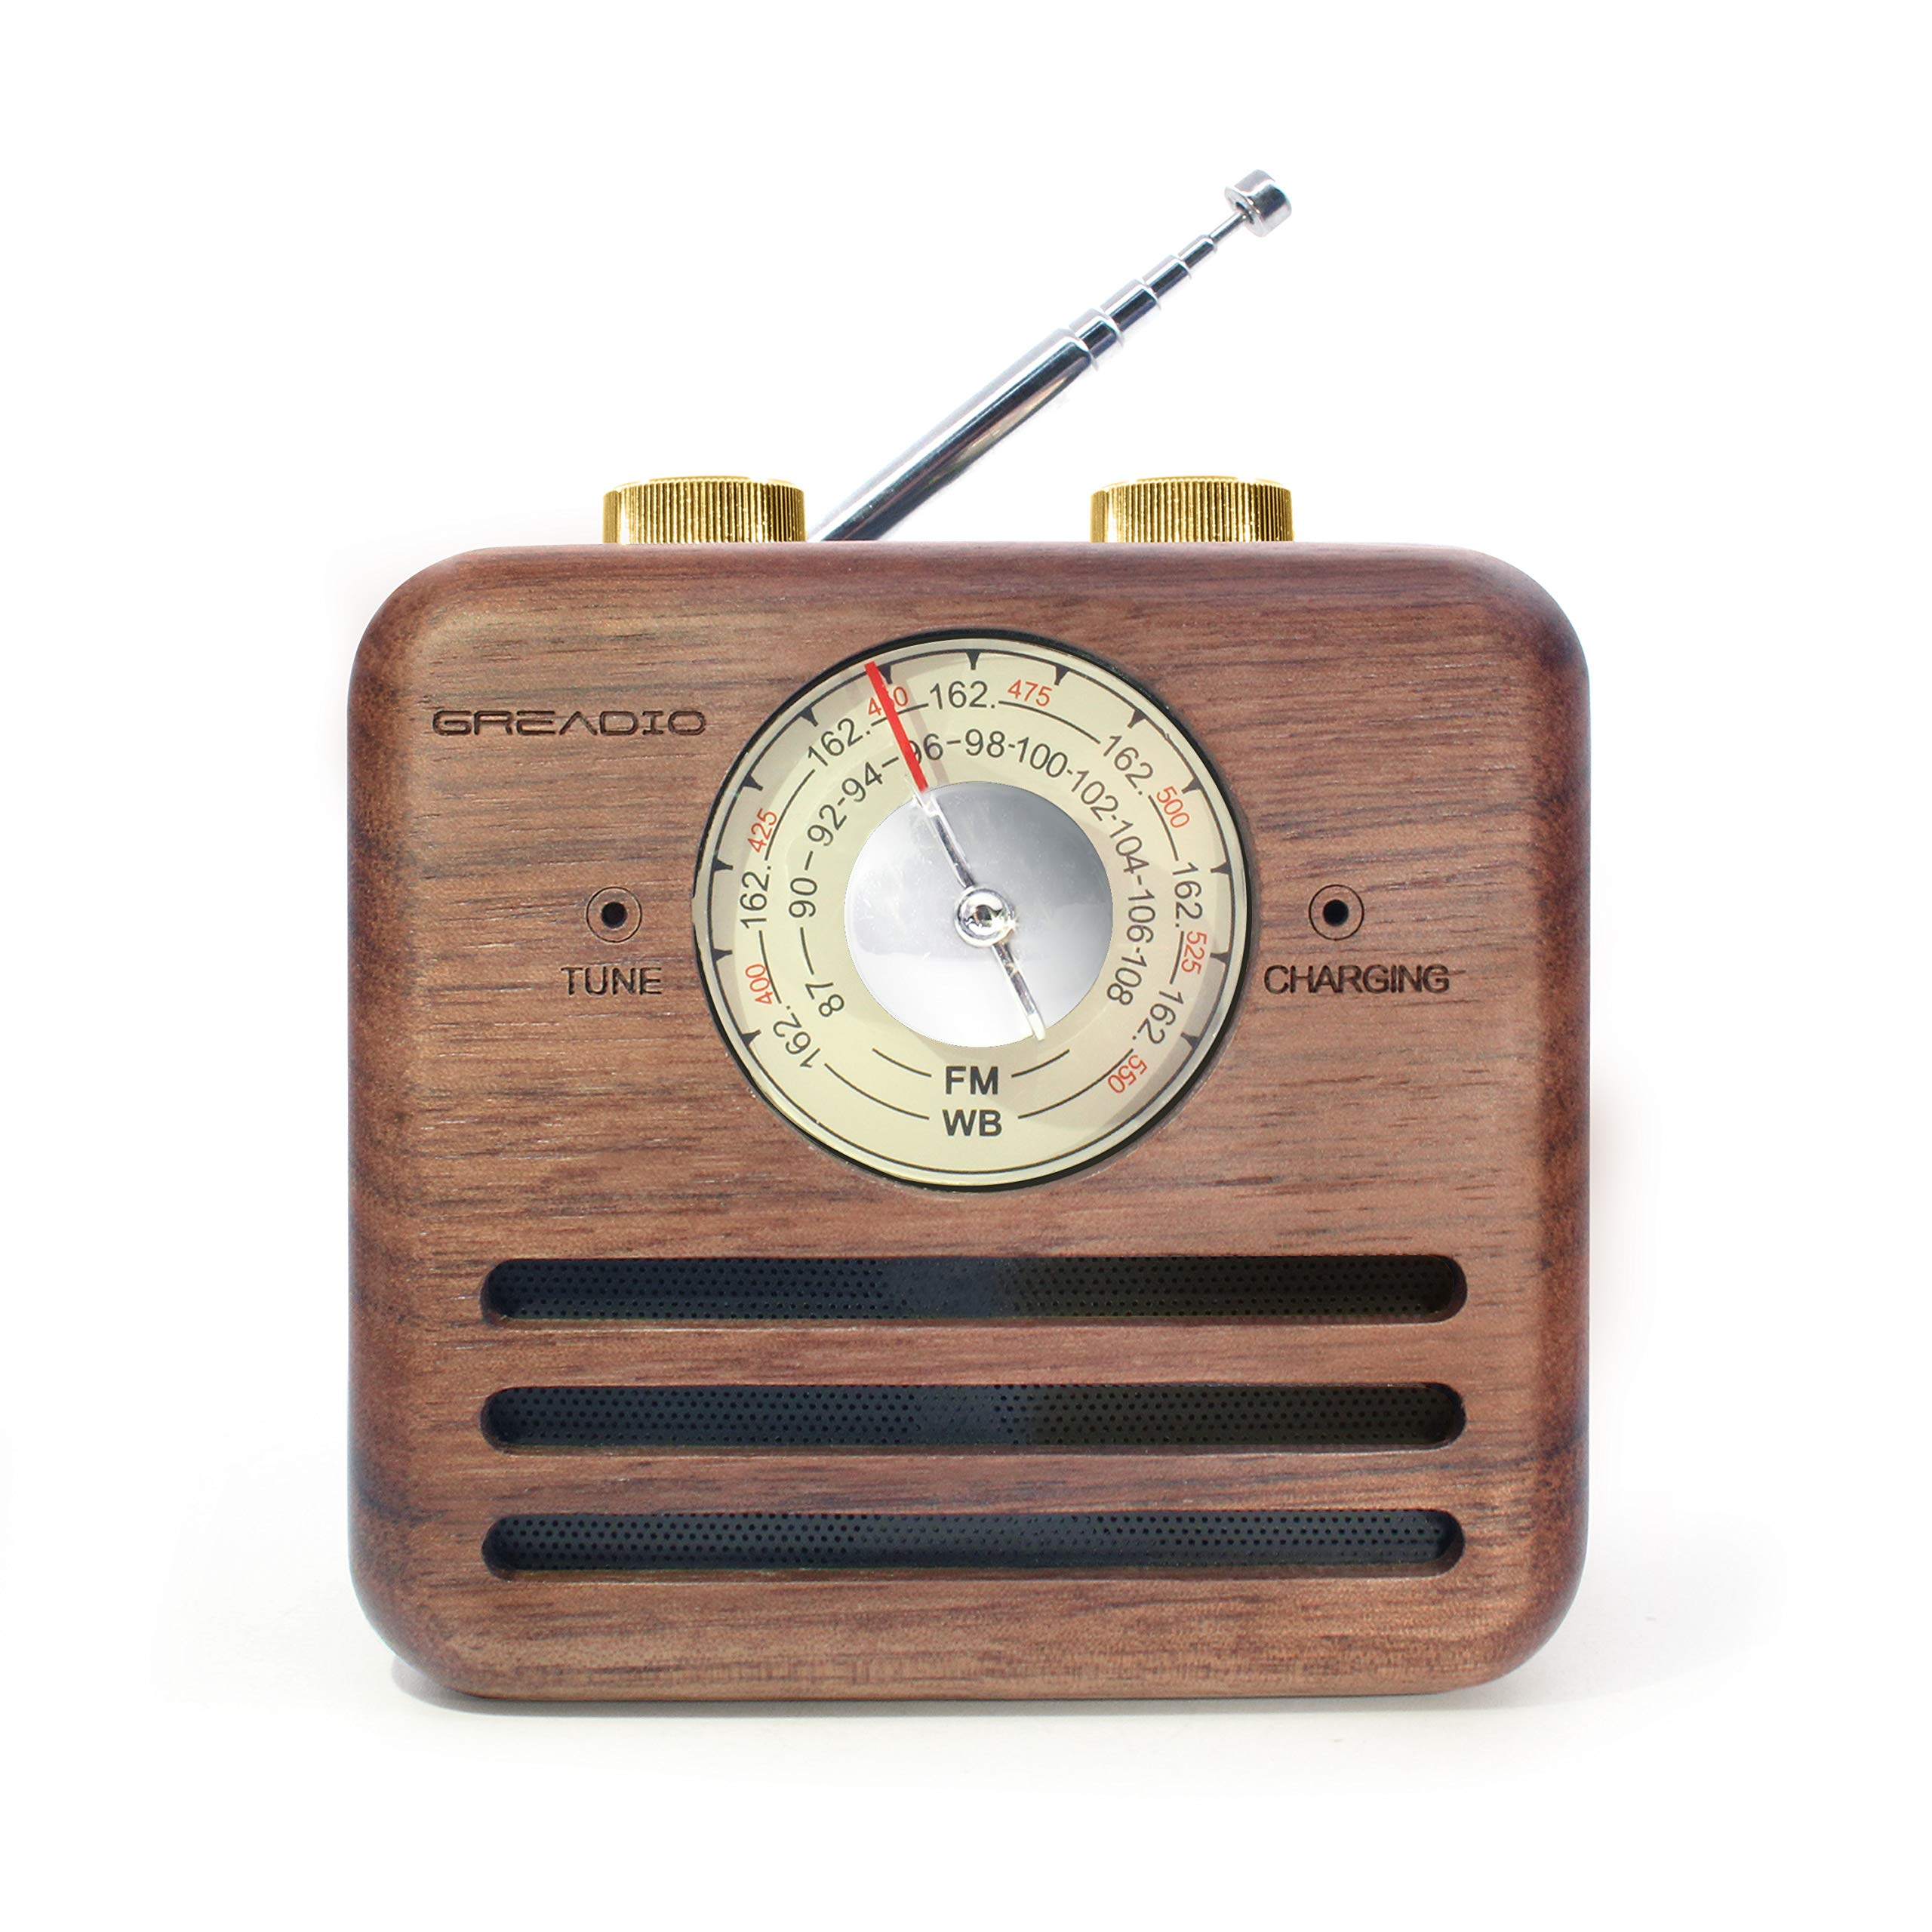 Retro Speaker Radios, Wireless Bluetooth Speaker with Wood FM/WB NOAA Weather Radio, Natural Walnut Material, Loud Clear Sound for Home, Office, Travel